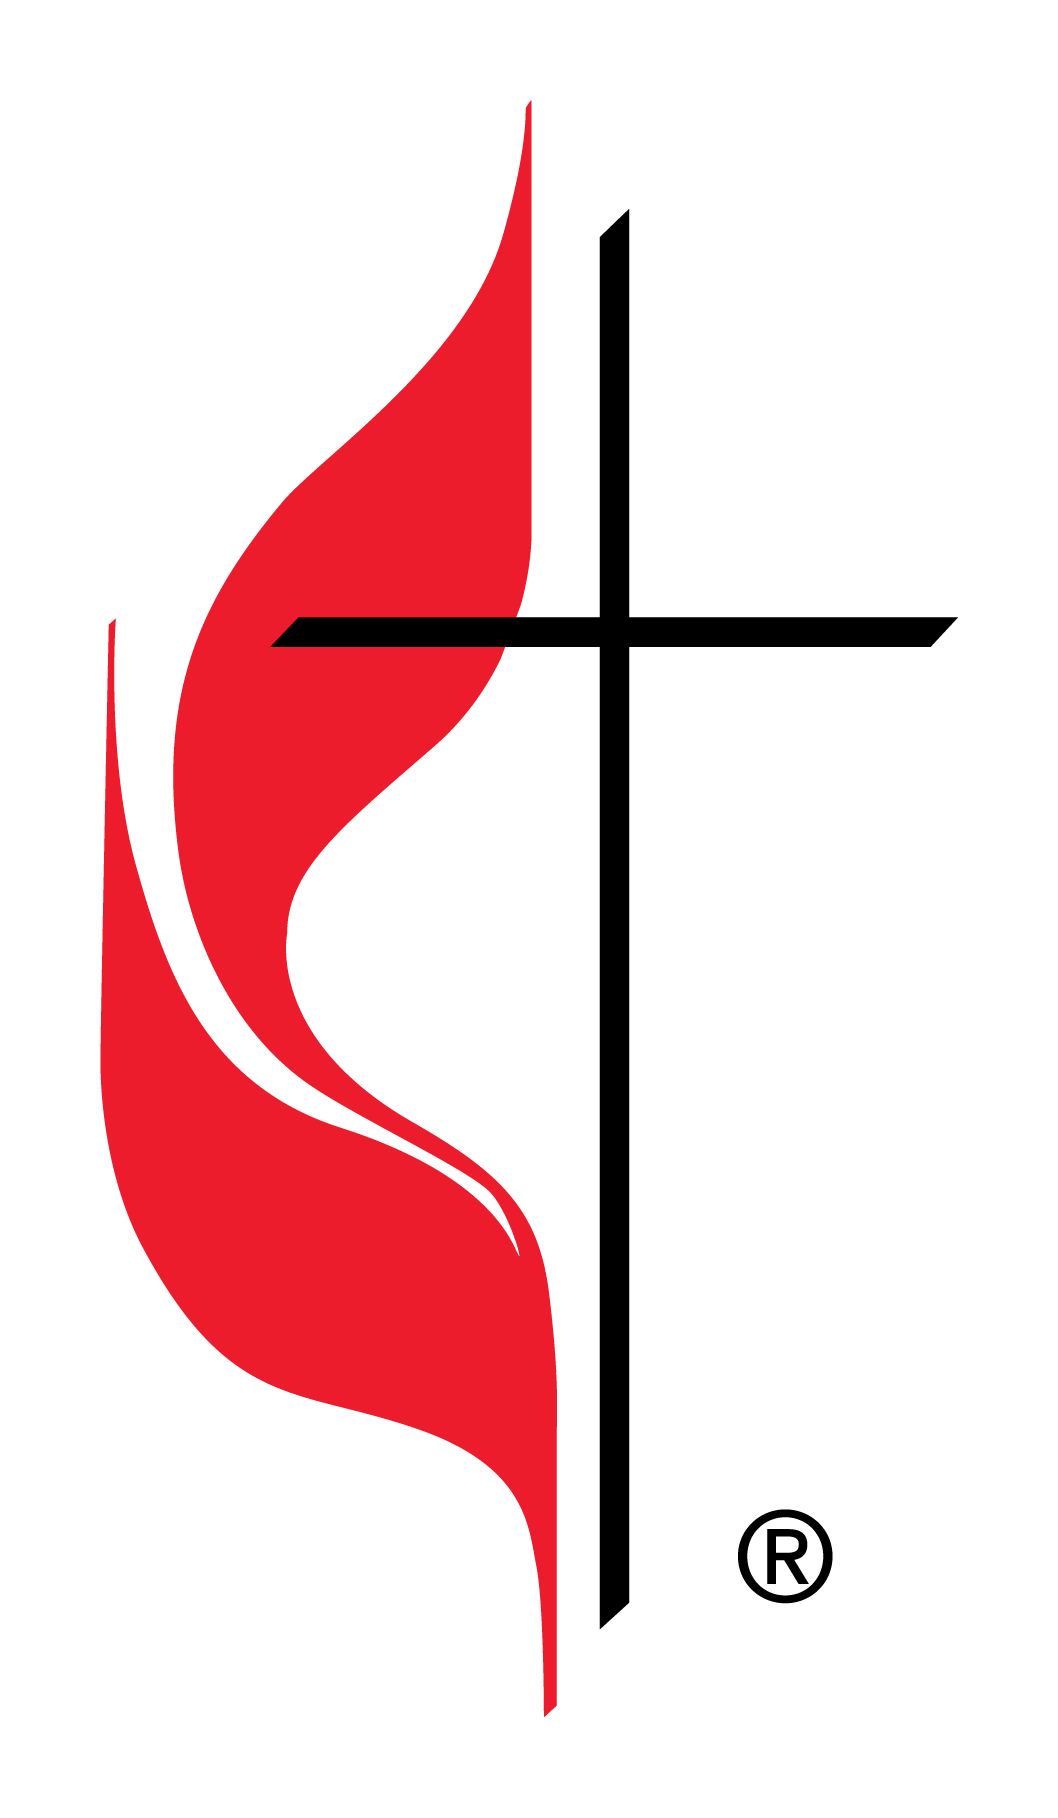 Official Cross and Flame Logo of The United Methodist Church ... picture library stock